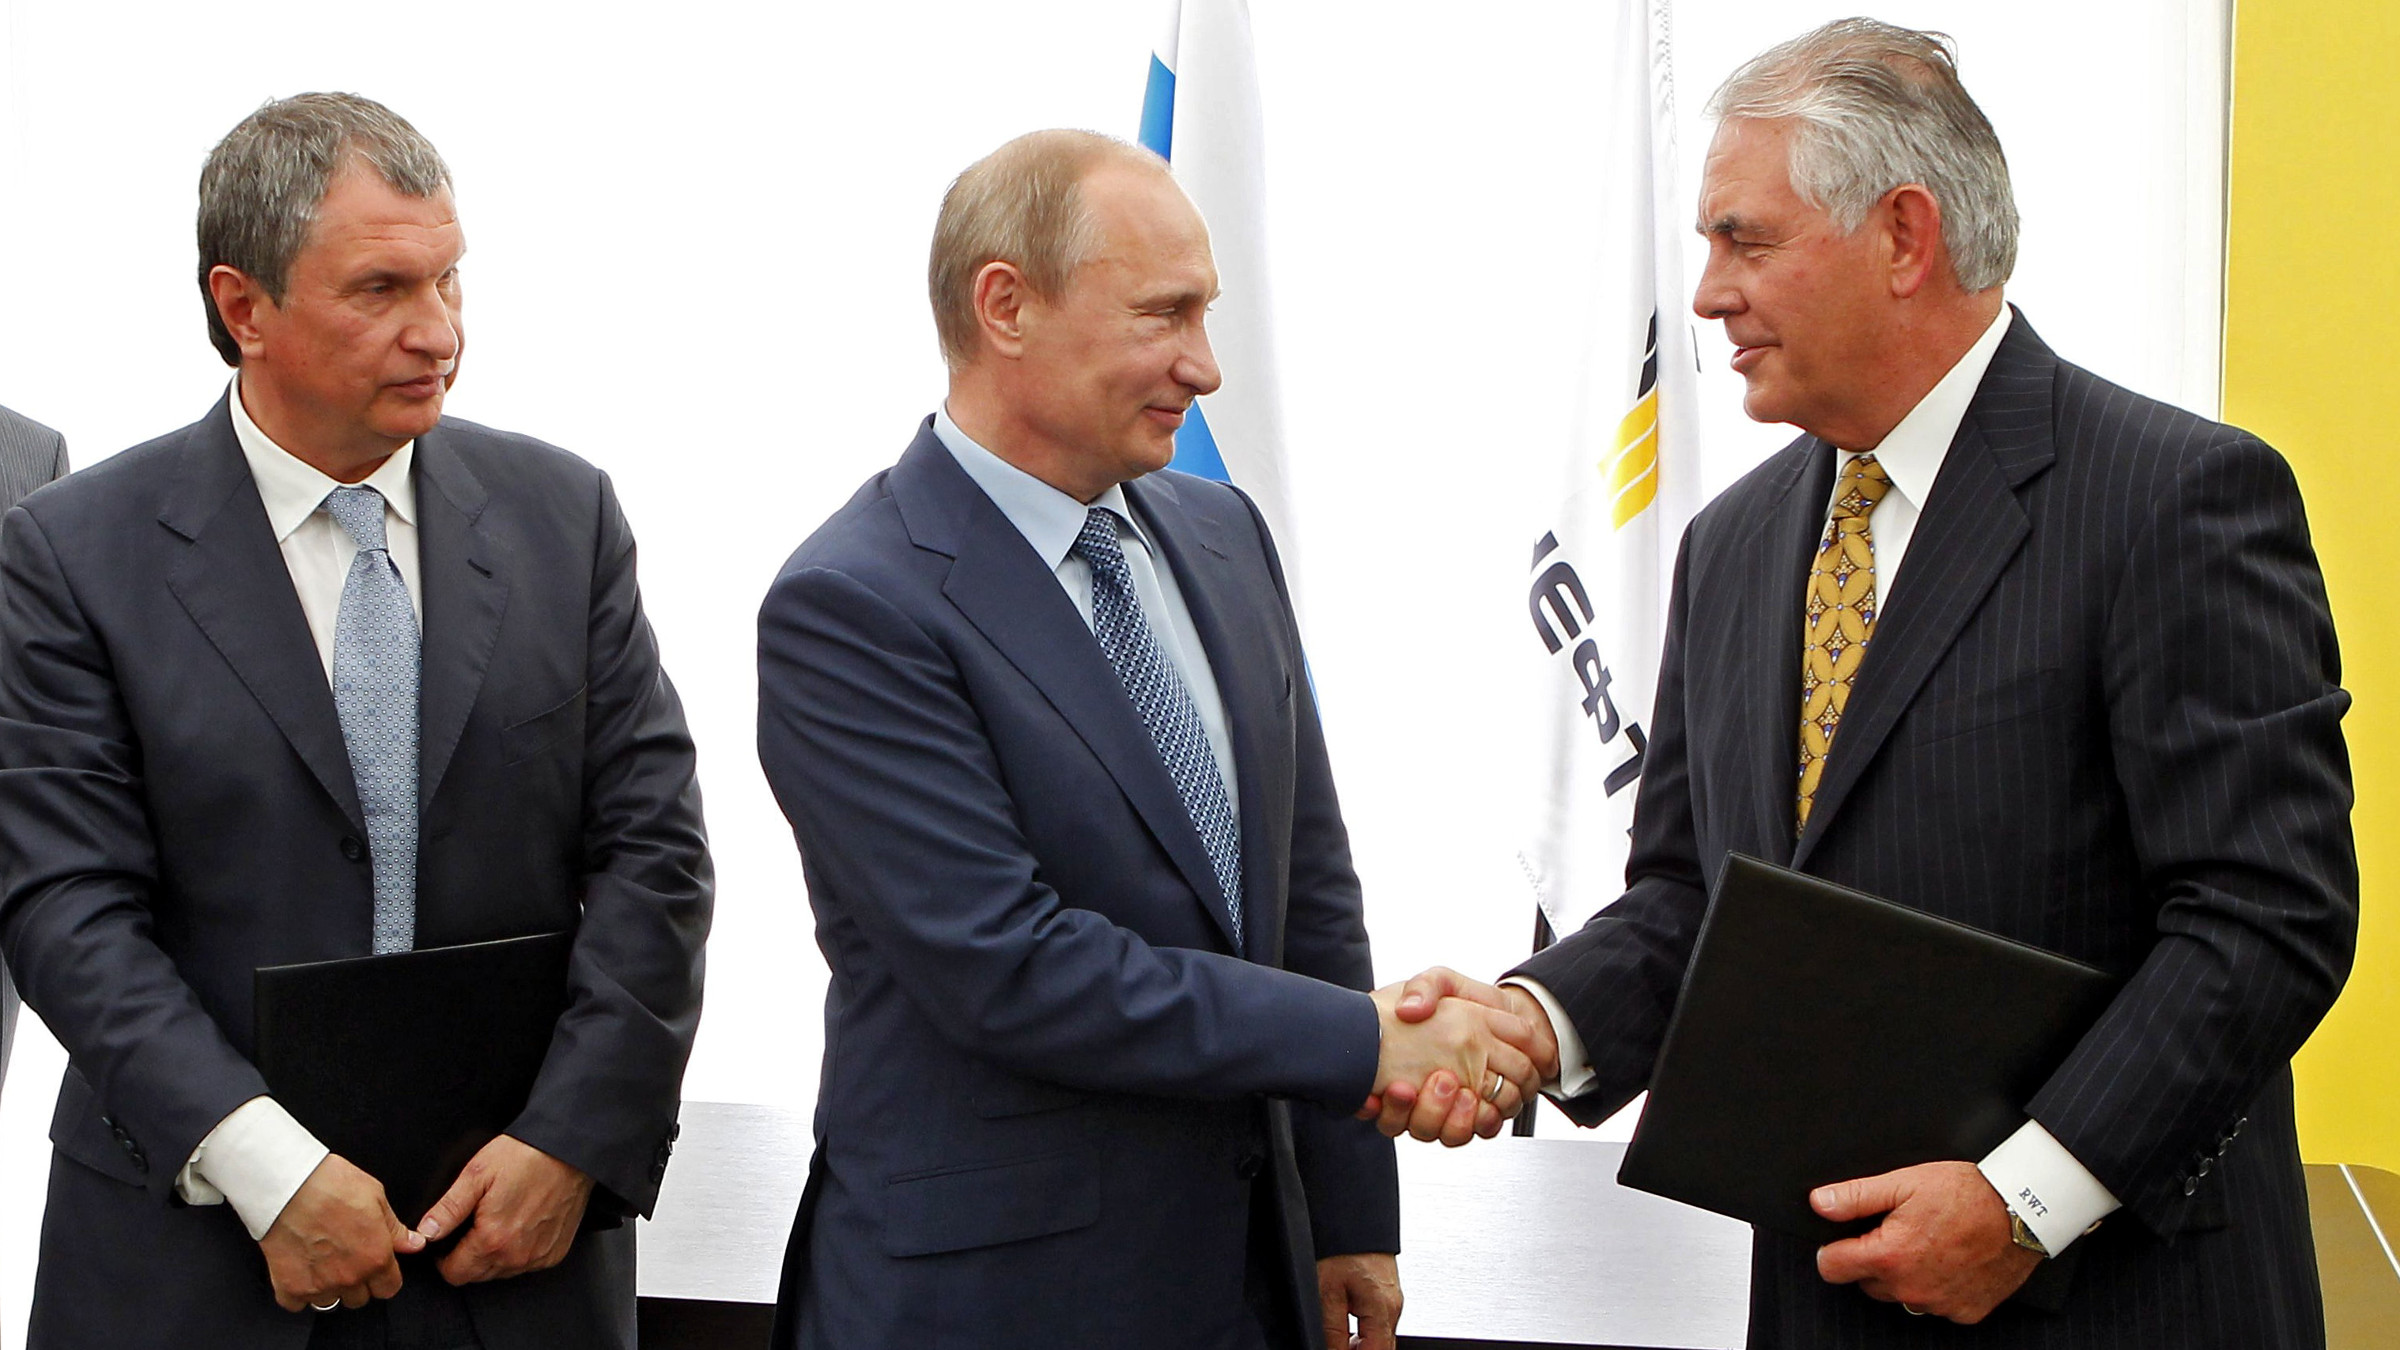 Russian President Vladimir Putin, center, and Exxon Mobil Corp. CEO Rex Tillerson shake hands at a signing ceremony of an agreement between state-controlled Russian oil company Rosneft and Exxon Mobil corporation at the Black Sea port of Tuapse, southern Russia, Friday, June 15, 2012. At left is CEO of state-controlled Russian oil company Rosneft Igor Sechin